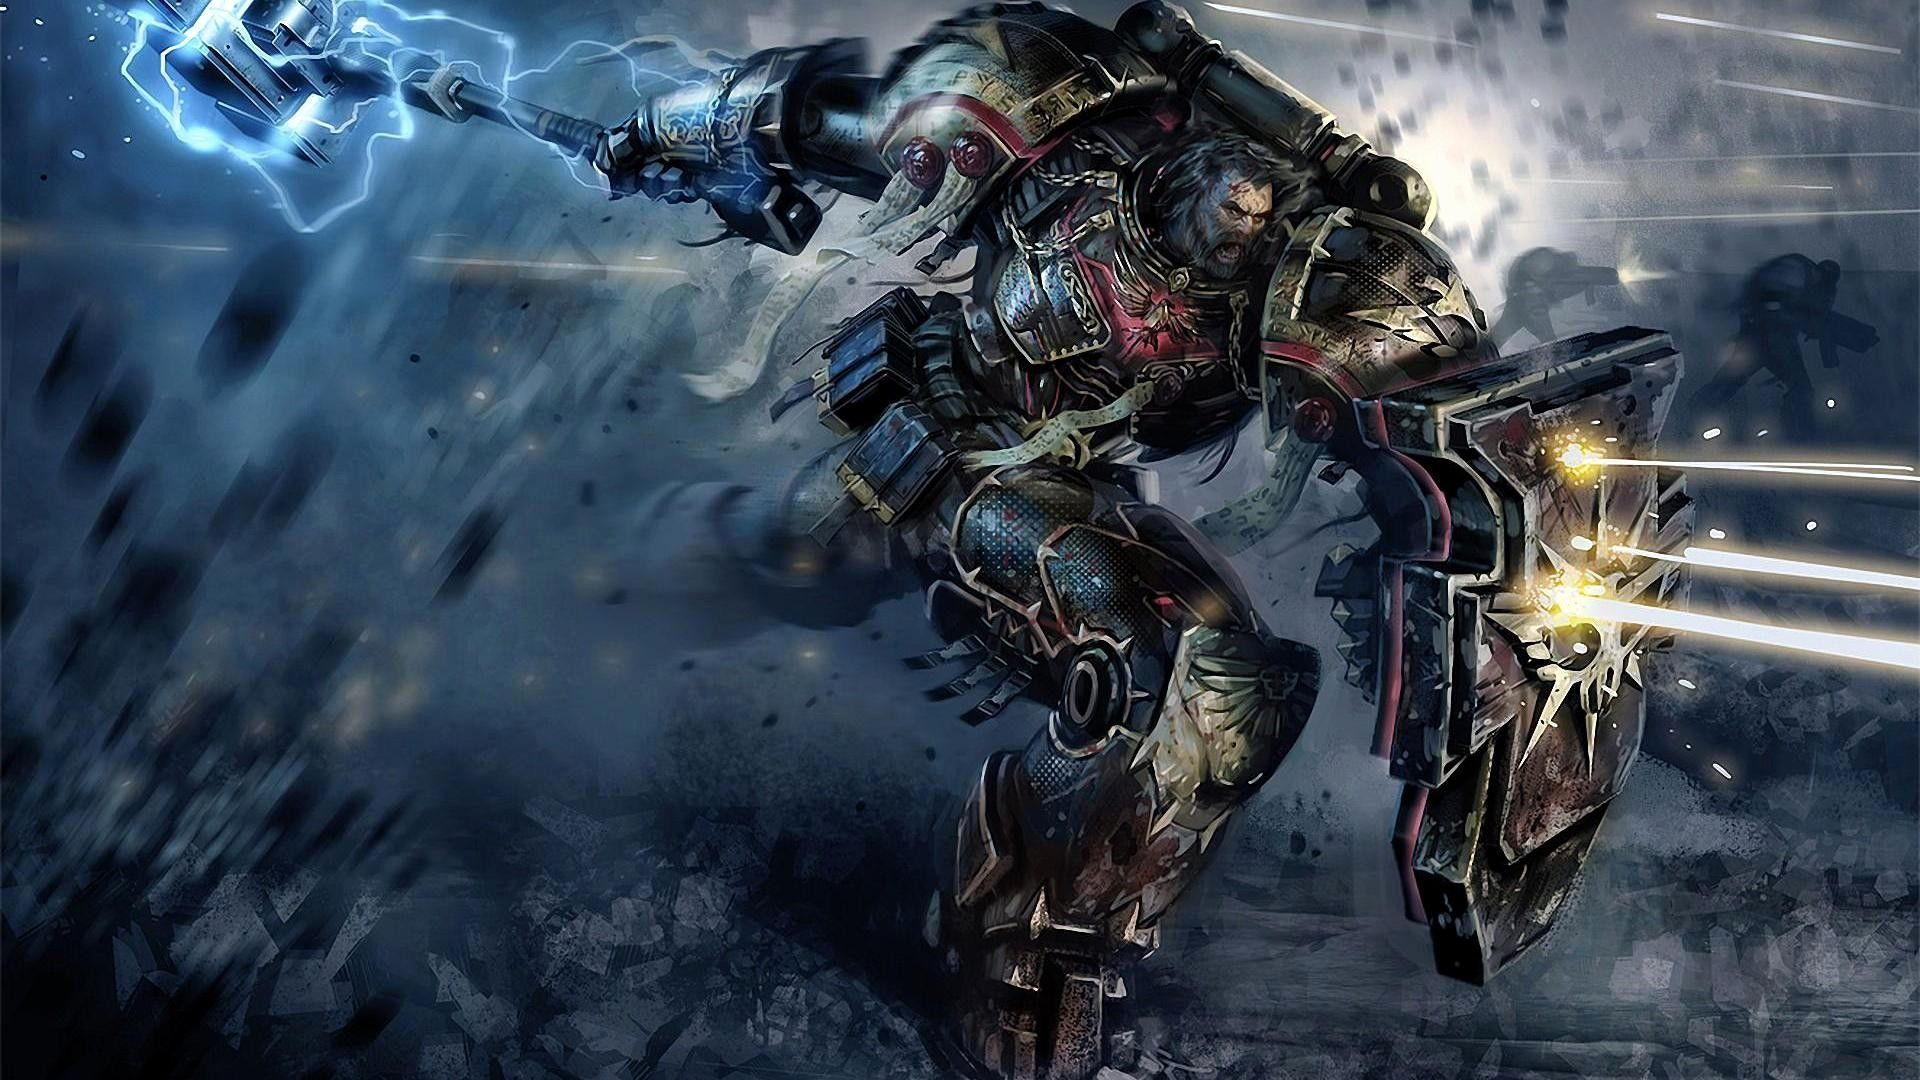 Space Marine Wallpapers Top Free Space Marine Backgrounds